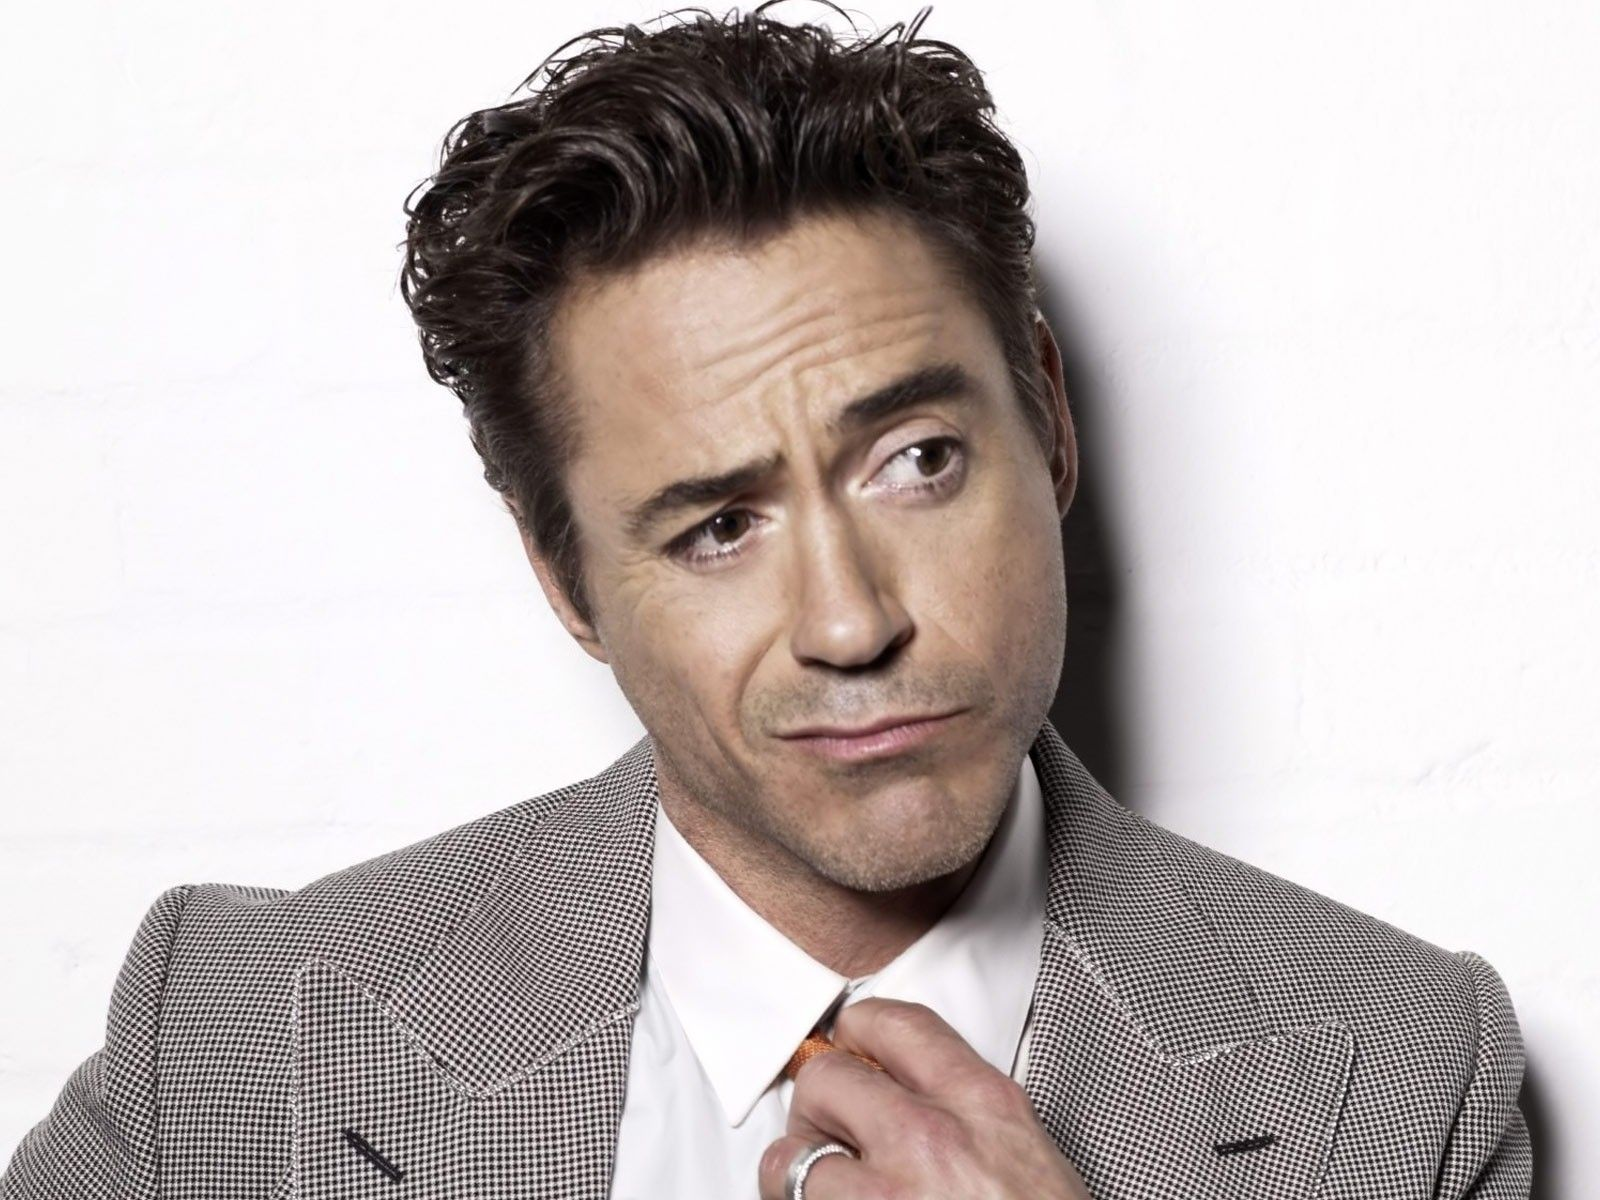 Free hd wallpaper robert downey jr - Robert Downey Junior Wallpapers Group 1280 800 Robert Downey Jr Photo Wallpapers 51 Wallpapers